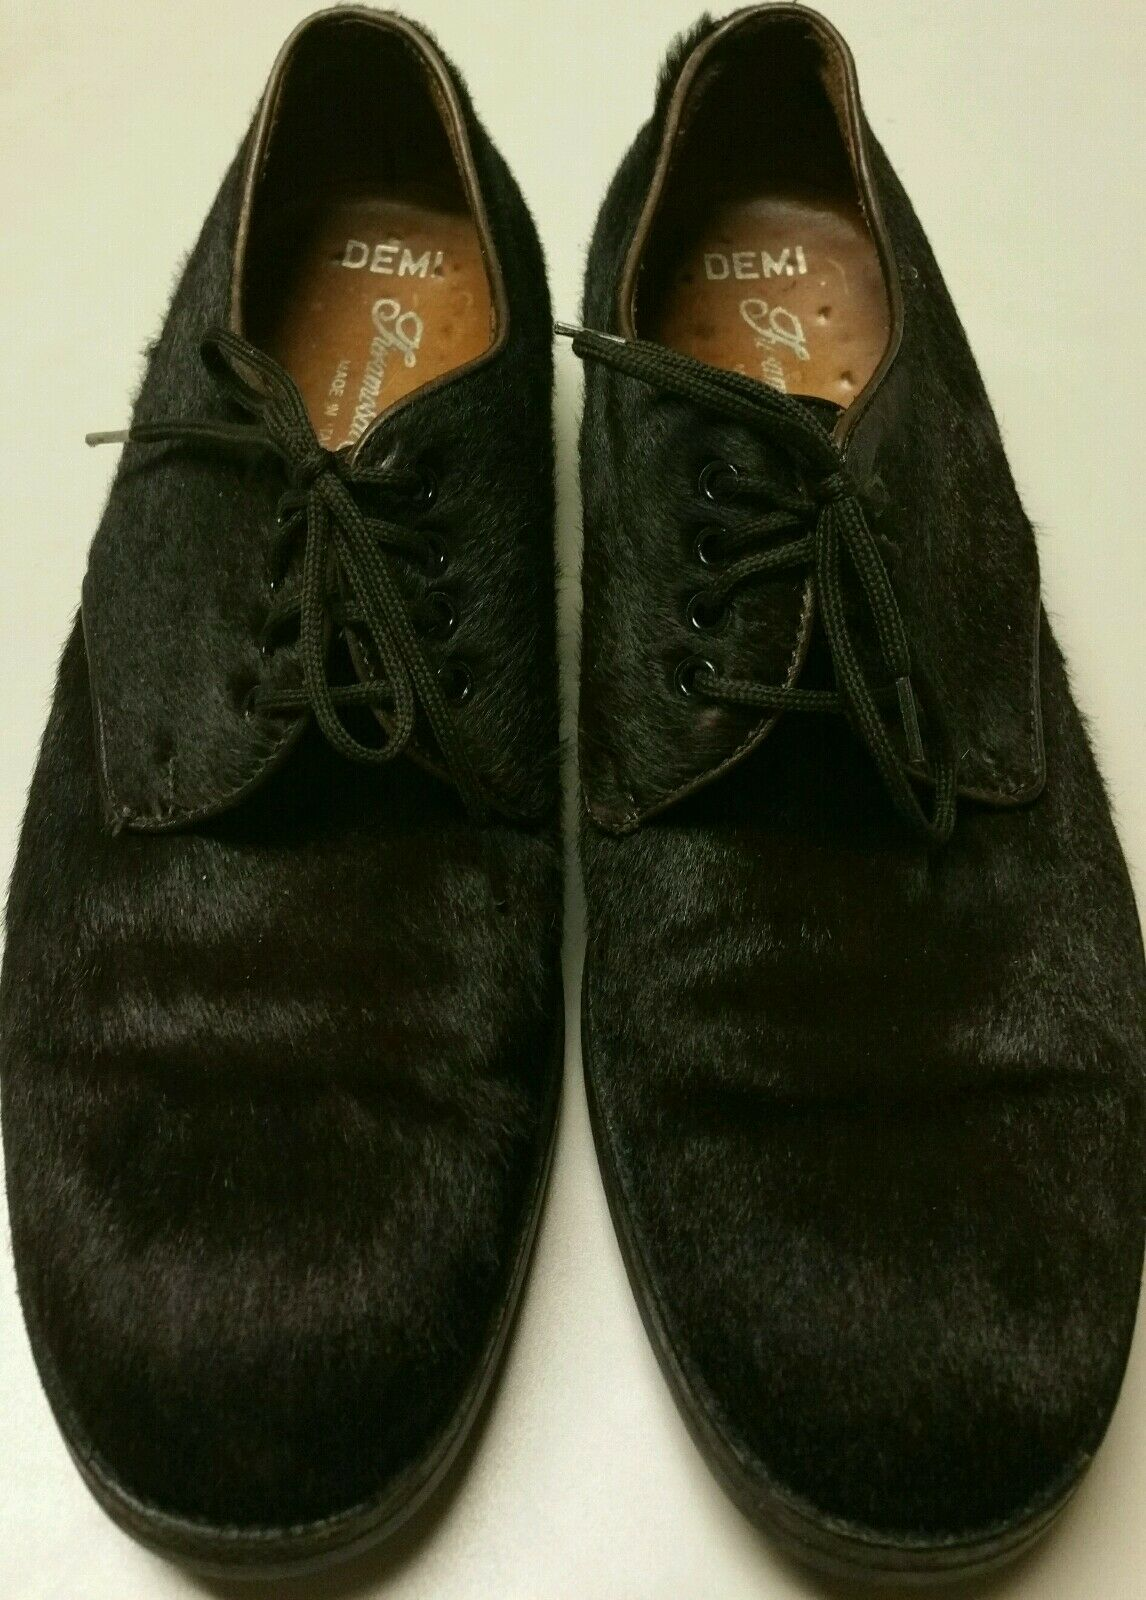 UNIQUE FIERAMOSCA DARK BROWN PONY HORSE HAIR OXFORDS ITALY 9 fits 8 runs small